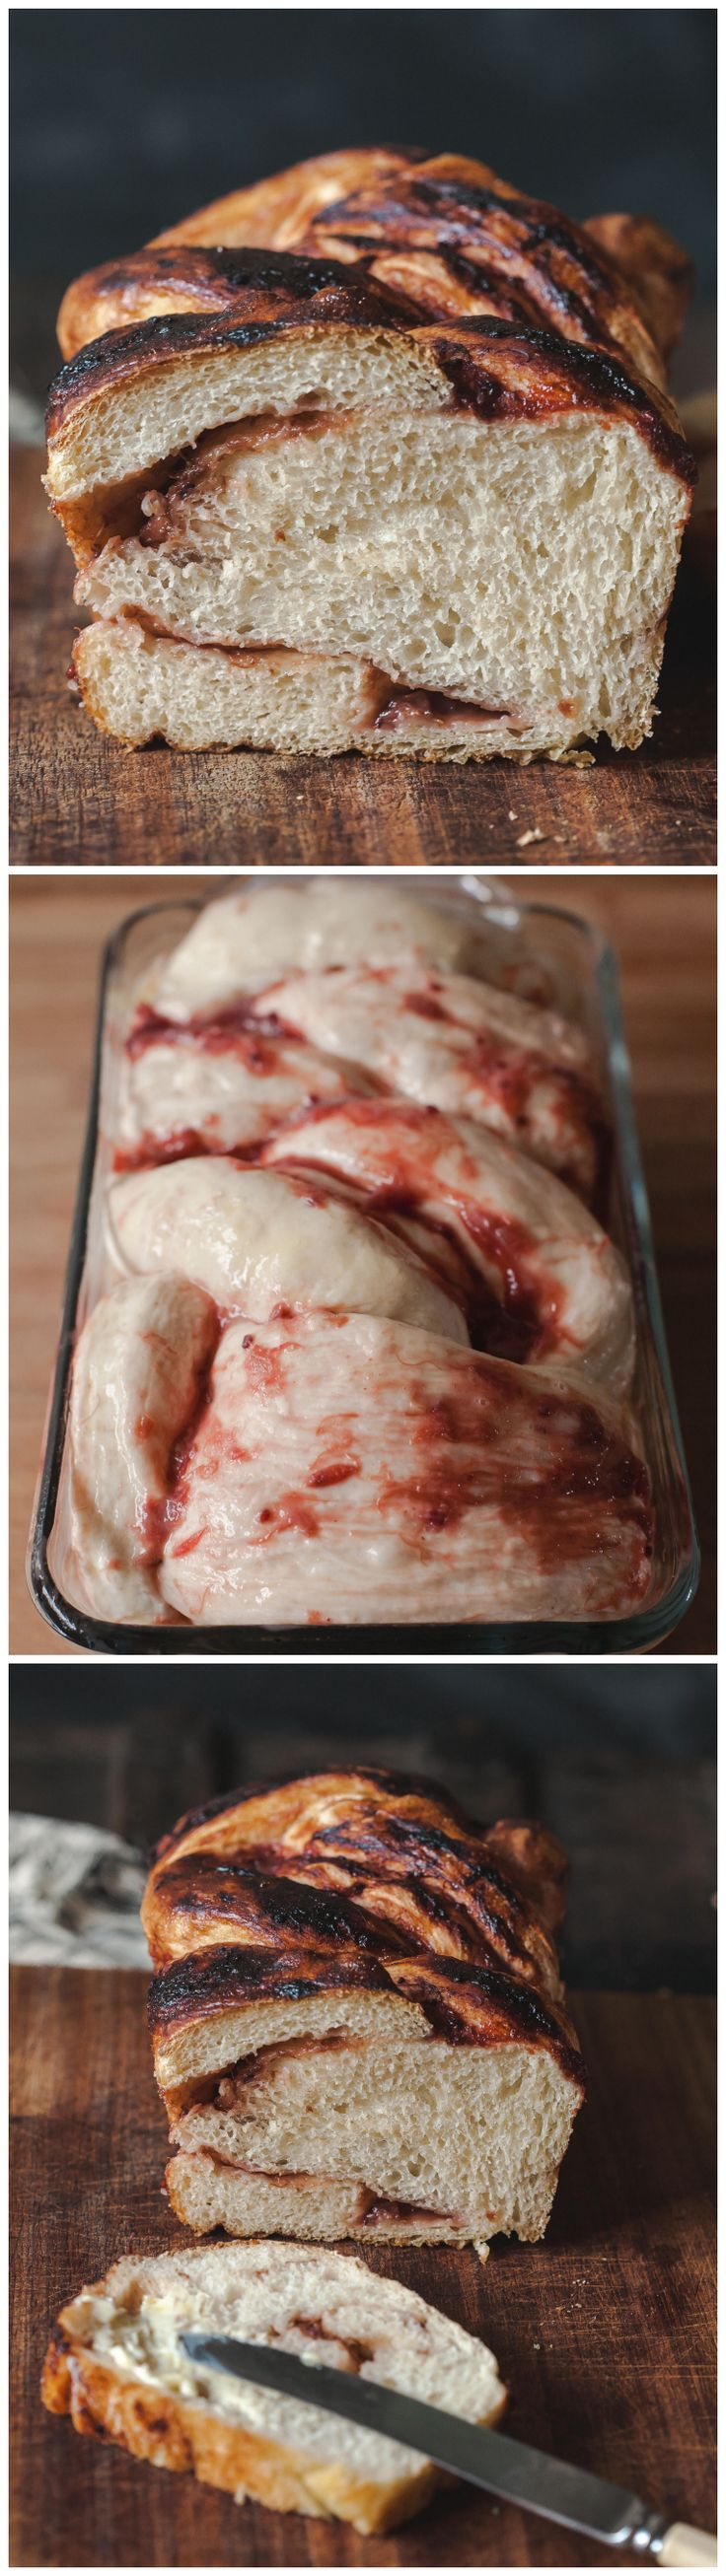 This bread takes half of the time of most yeasted breads. Swirled with tart rhubarb and red currants it could be used for both sweet and savoury toppings.